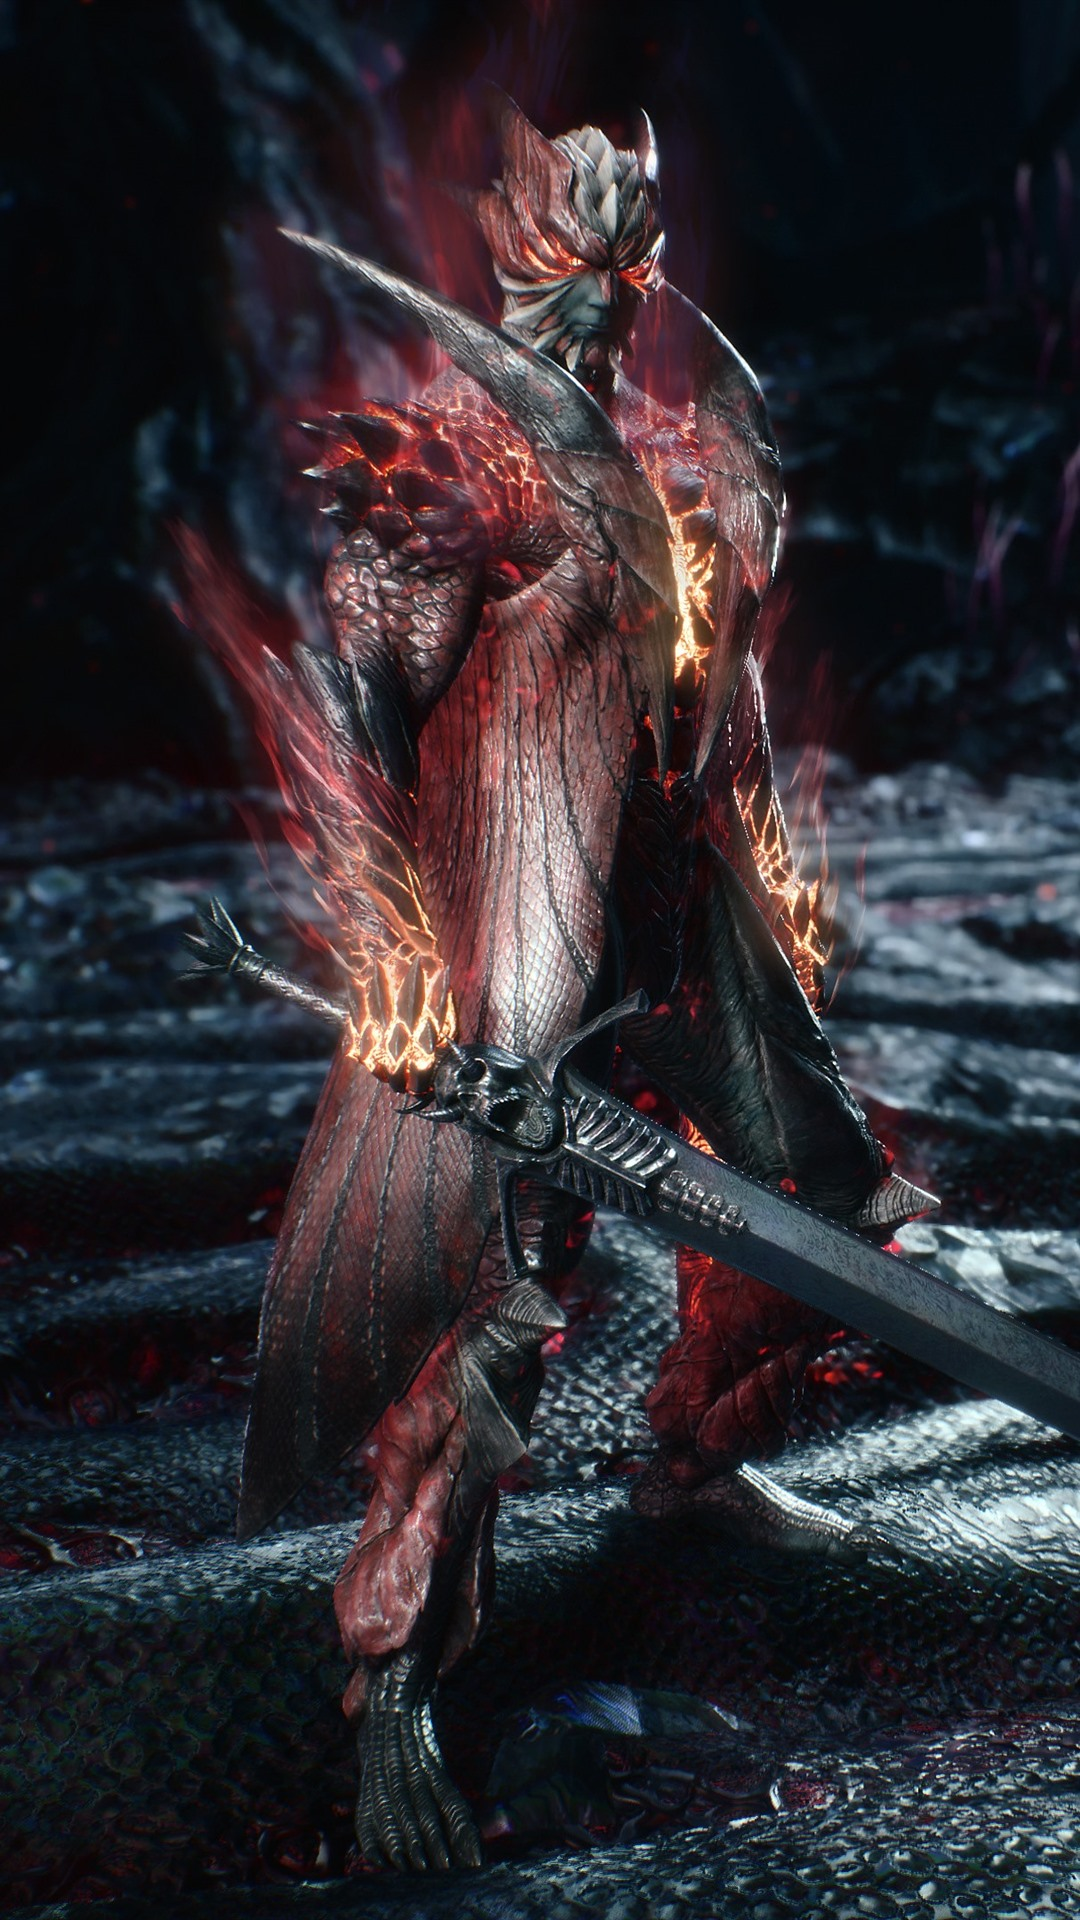 Wallpaper Devil May Cry 5 Warrior Sword 3840x2160 Uhd 4k Picture